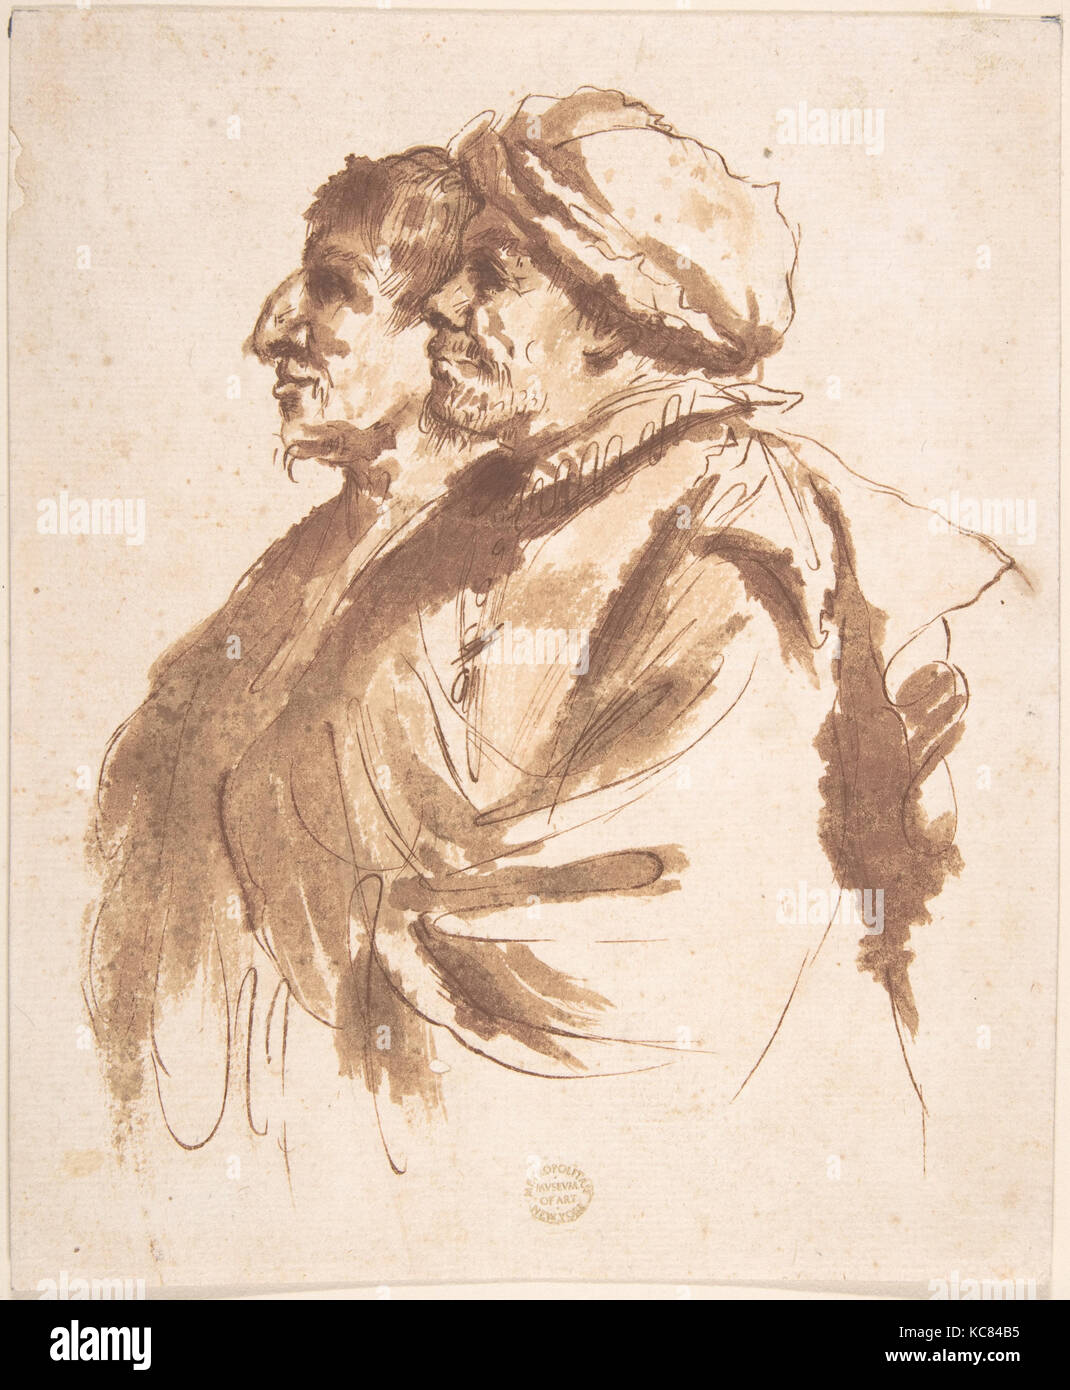 Two Men, Depicted Half-Length, in Profile, After Guercino, 17th century - Stock Image